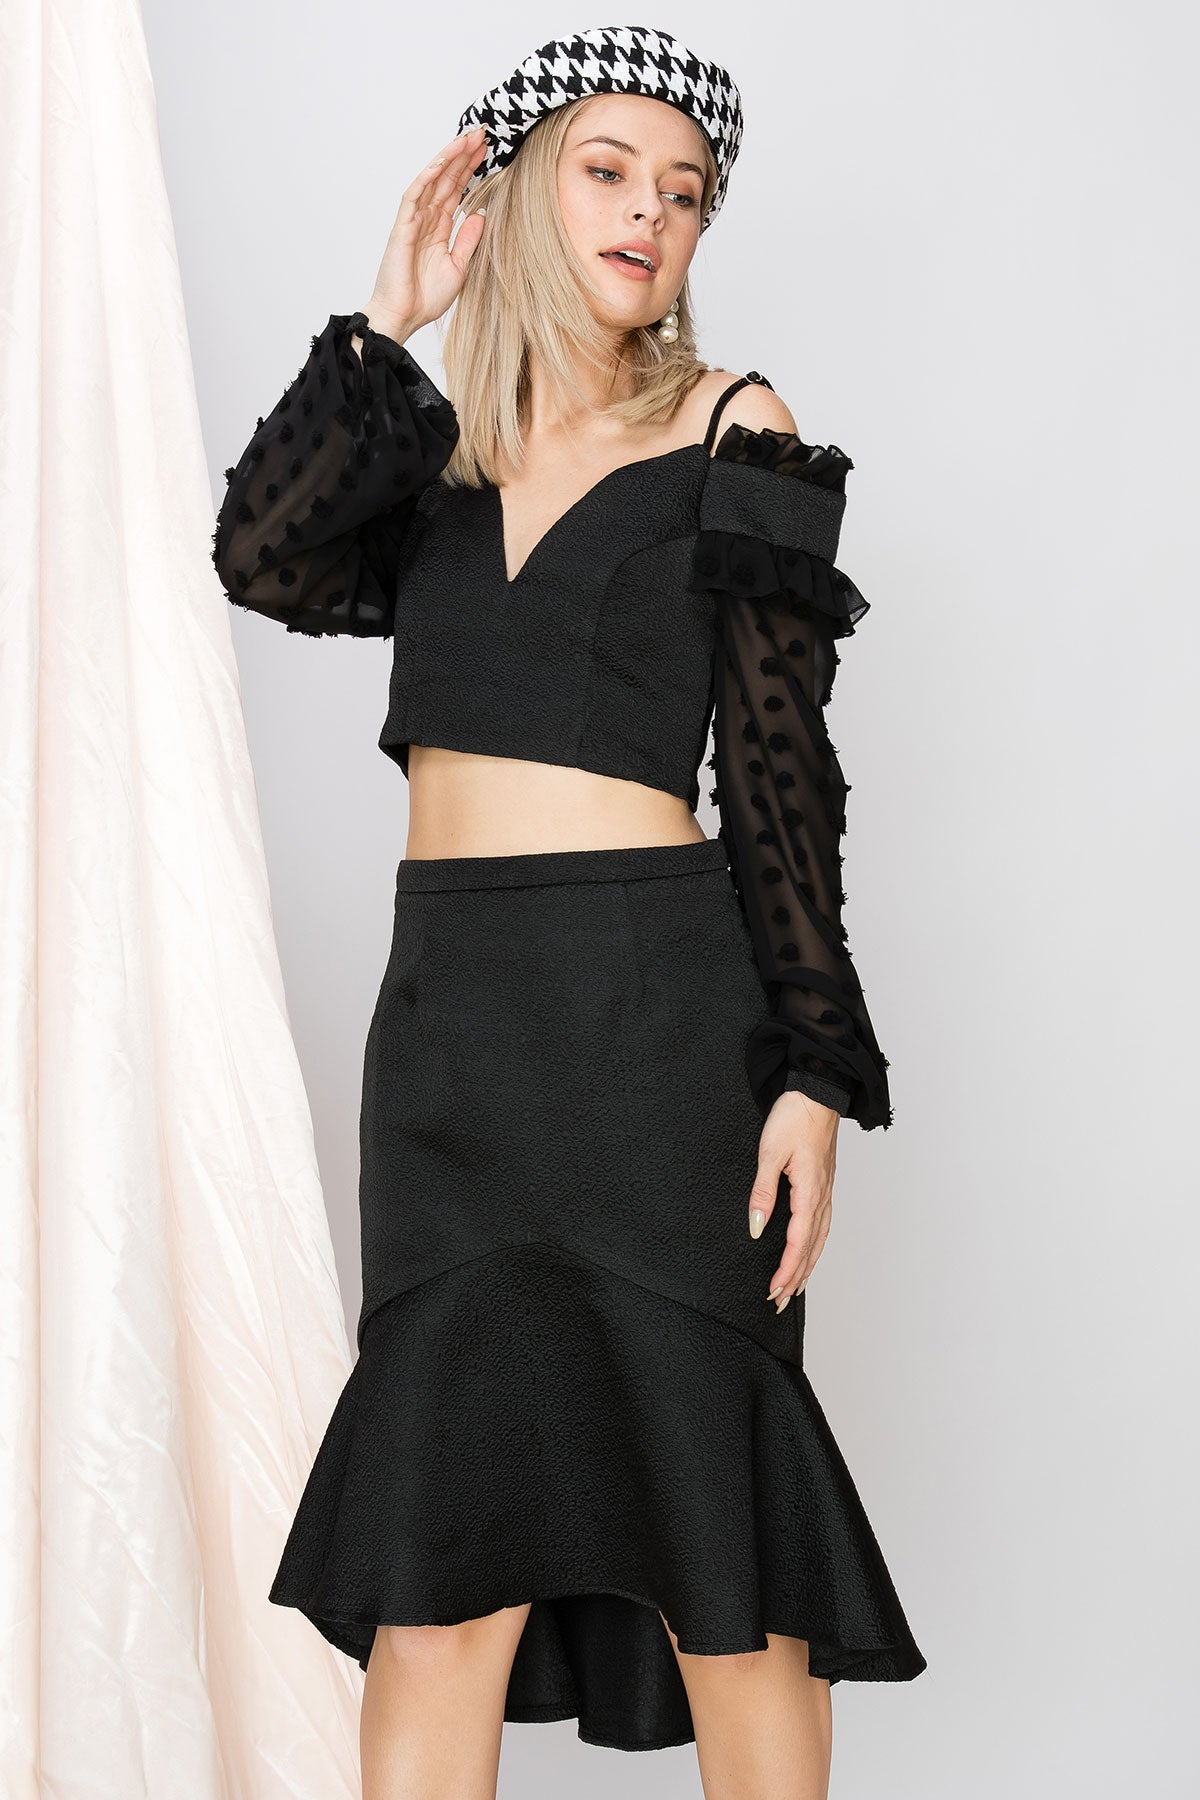 Stacey Top Skirt Set (Pre-Order)